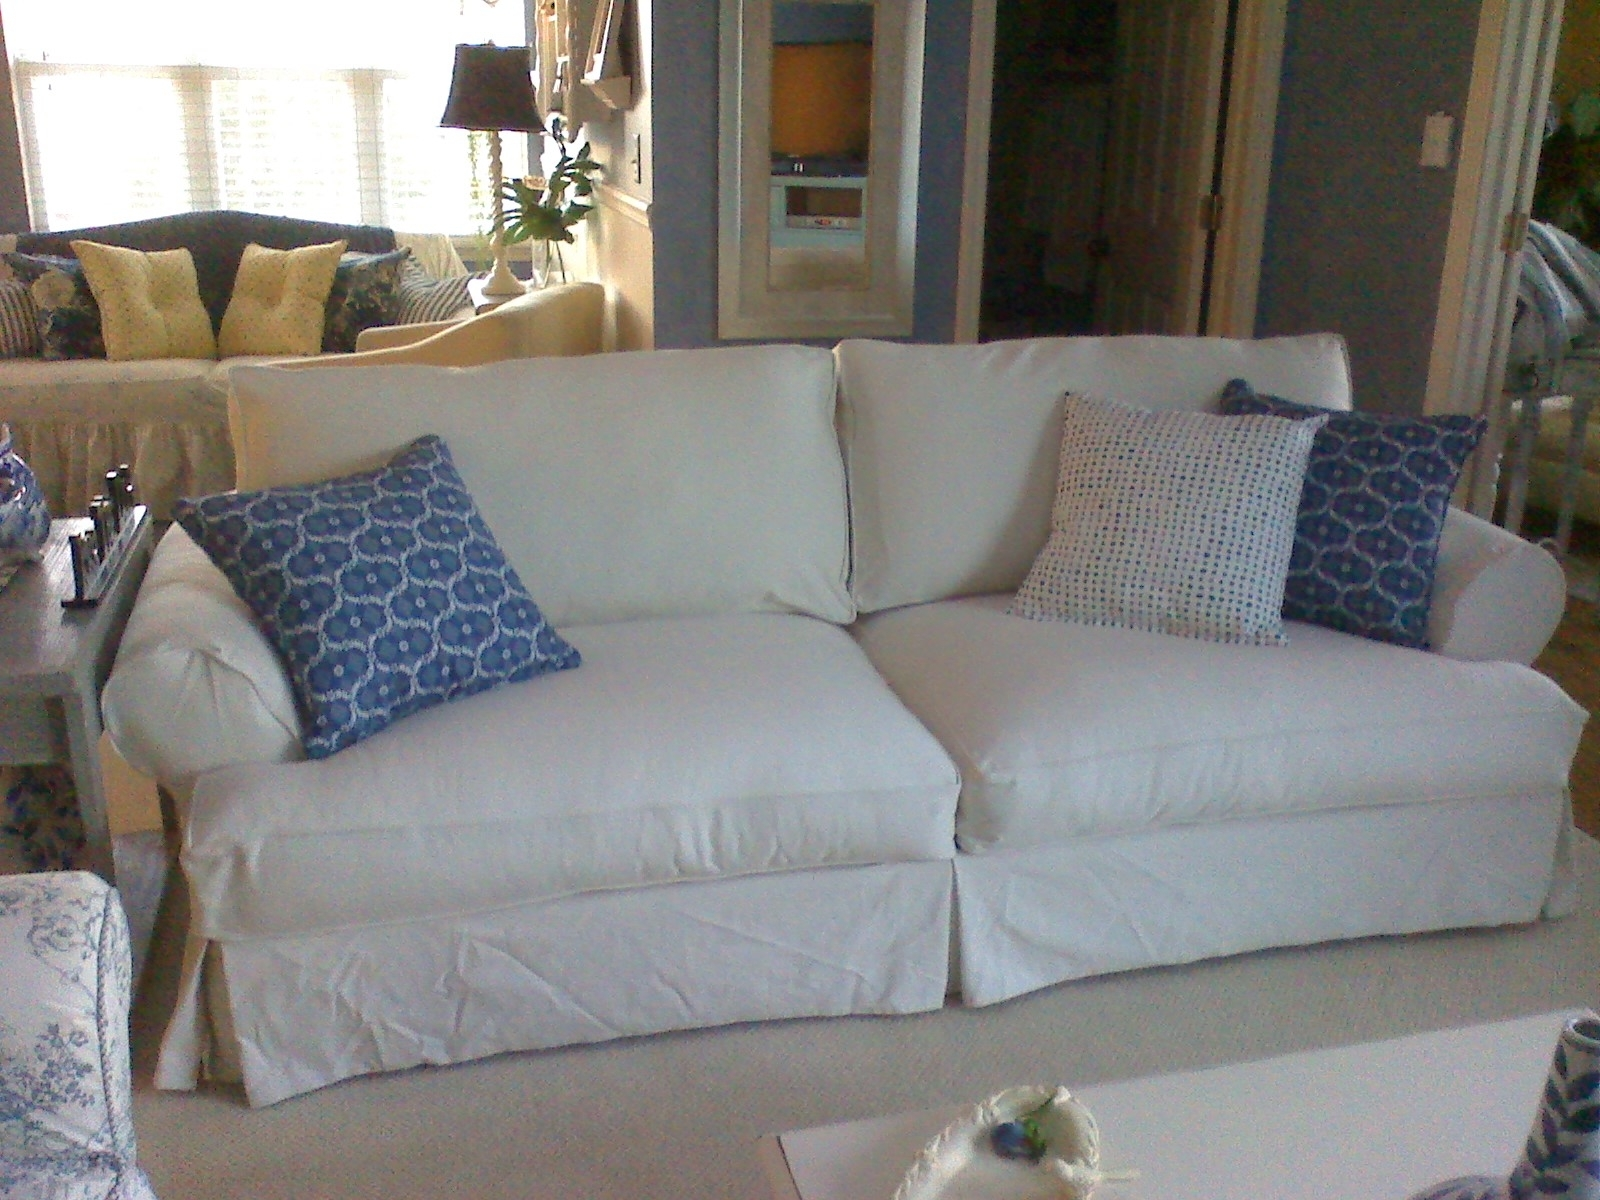 Fashionable Sofas With Washable Covers With Slipcovers For Sofas Be Equipped L Couch Covers Be Equipped (View 5 of 20)